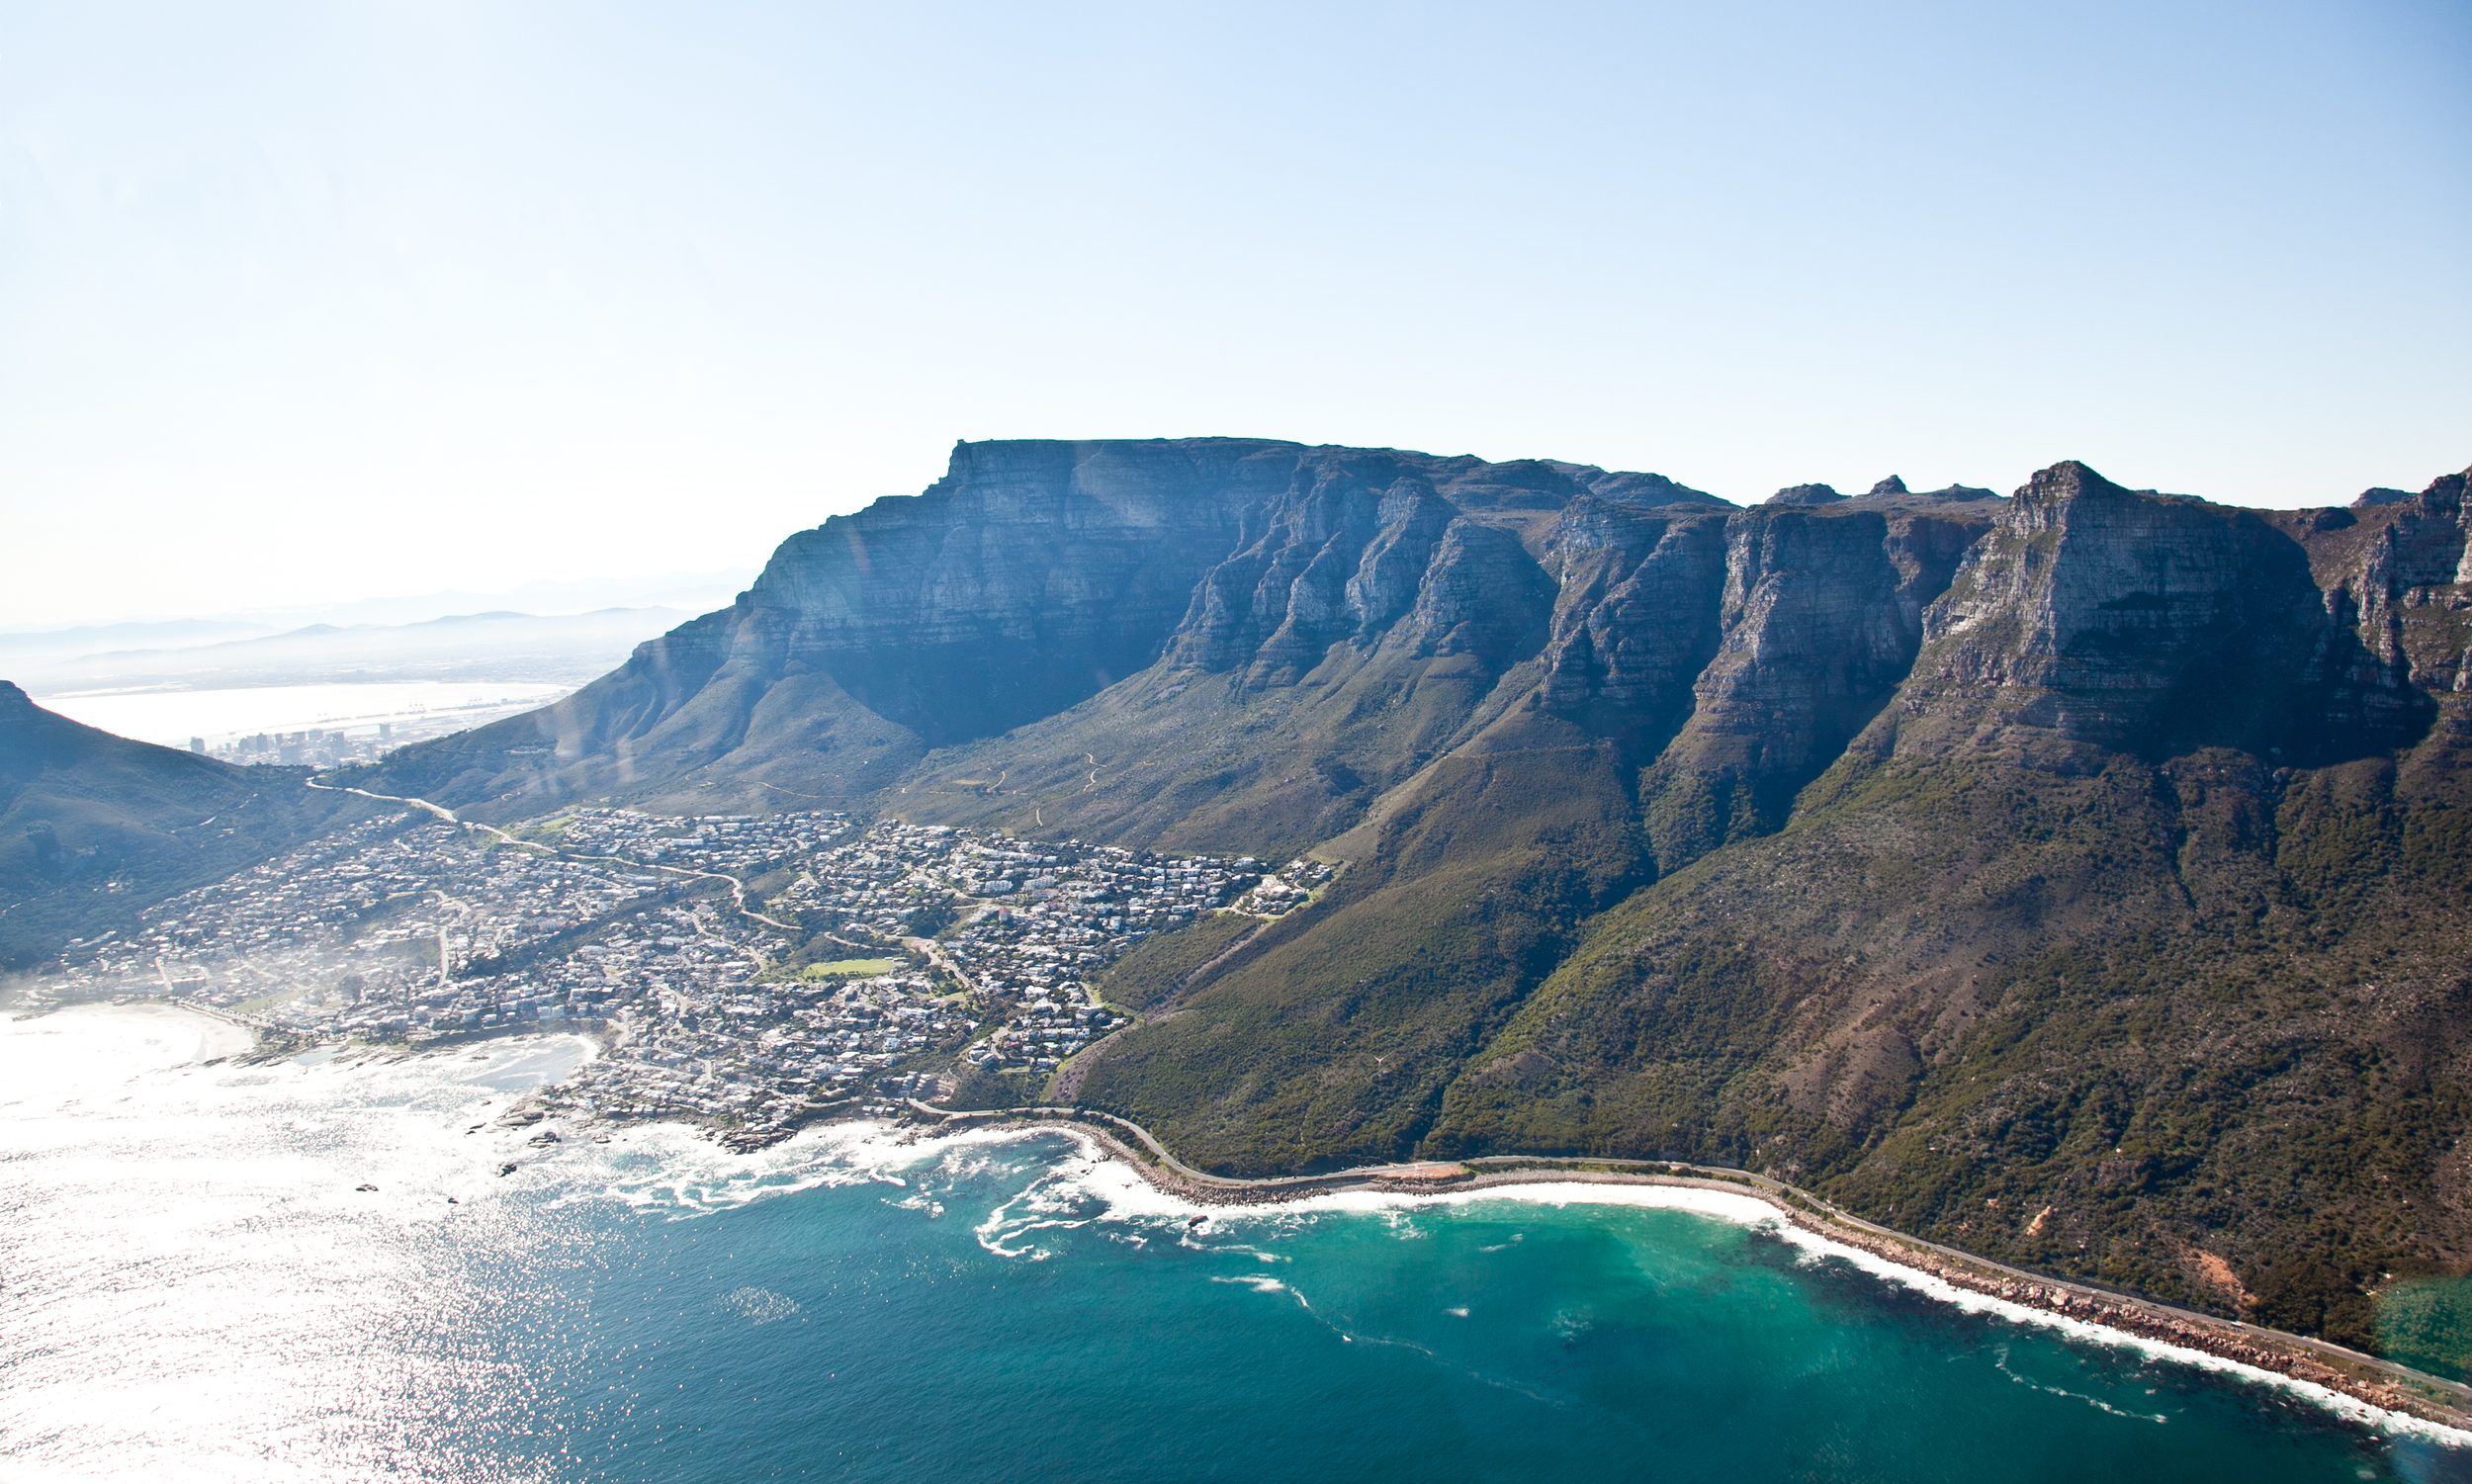 IMG_4807-cape-town-south-africa-helicopter-ride-trisa-taro.jpg